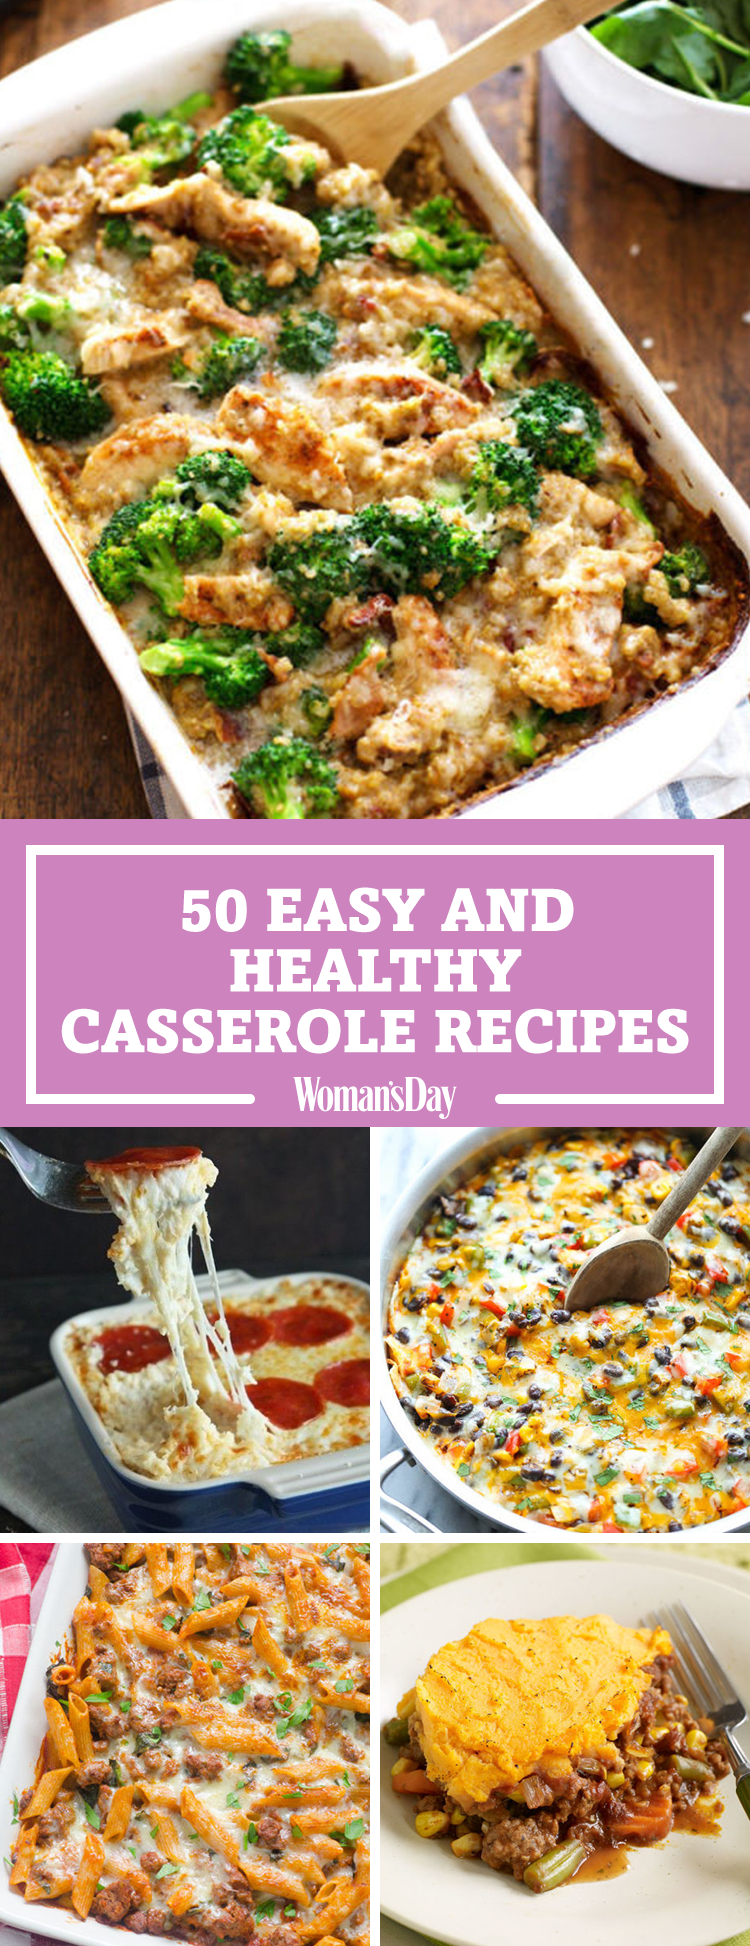 54 easy healthy casseroles best casserole recipes ideas forumfinder Image collections